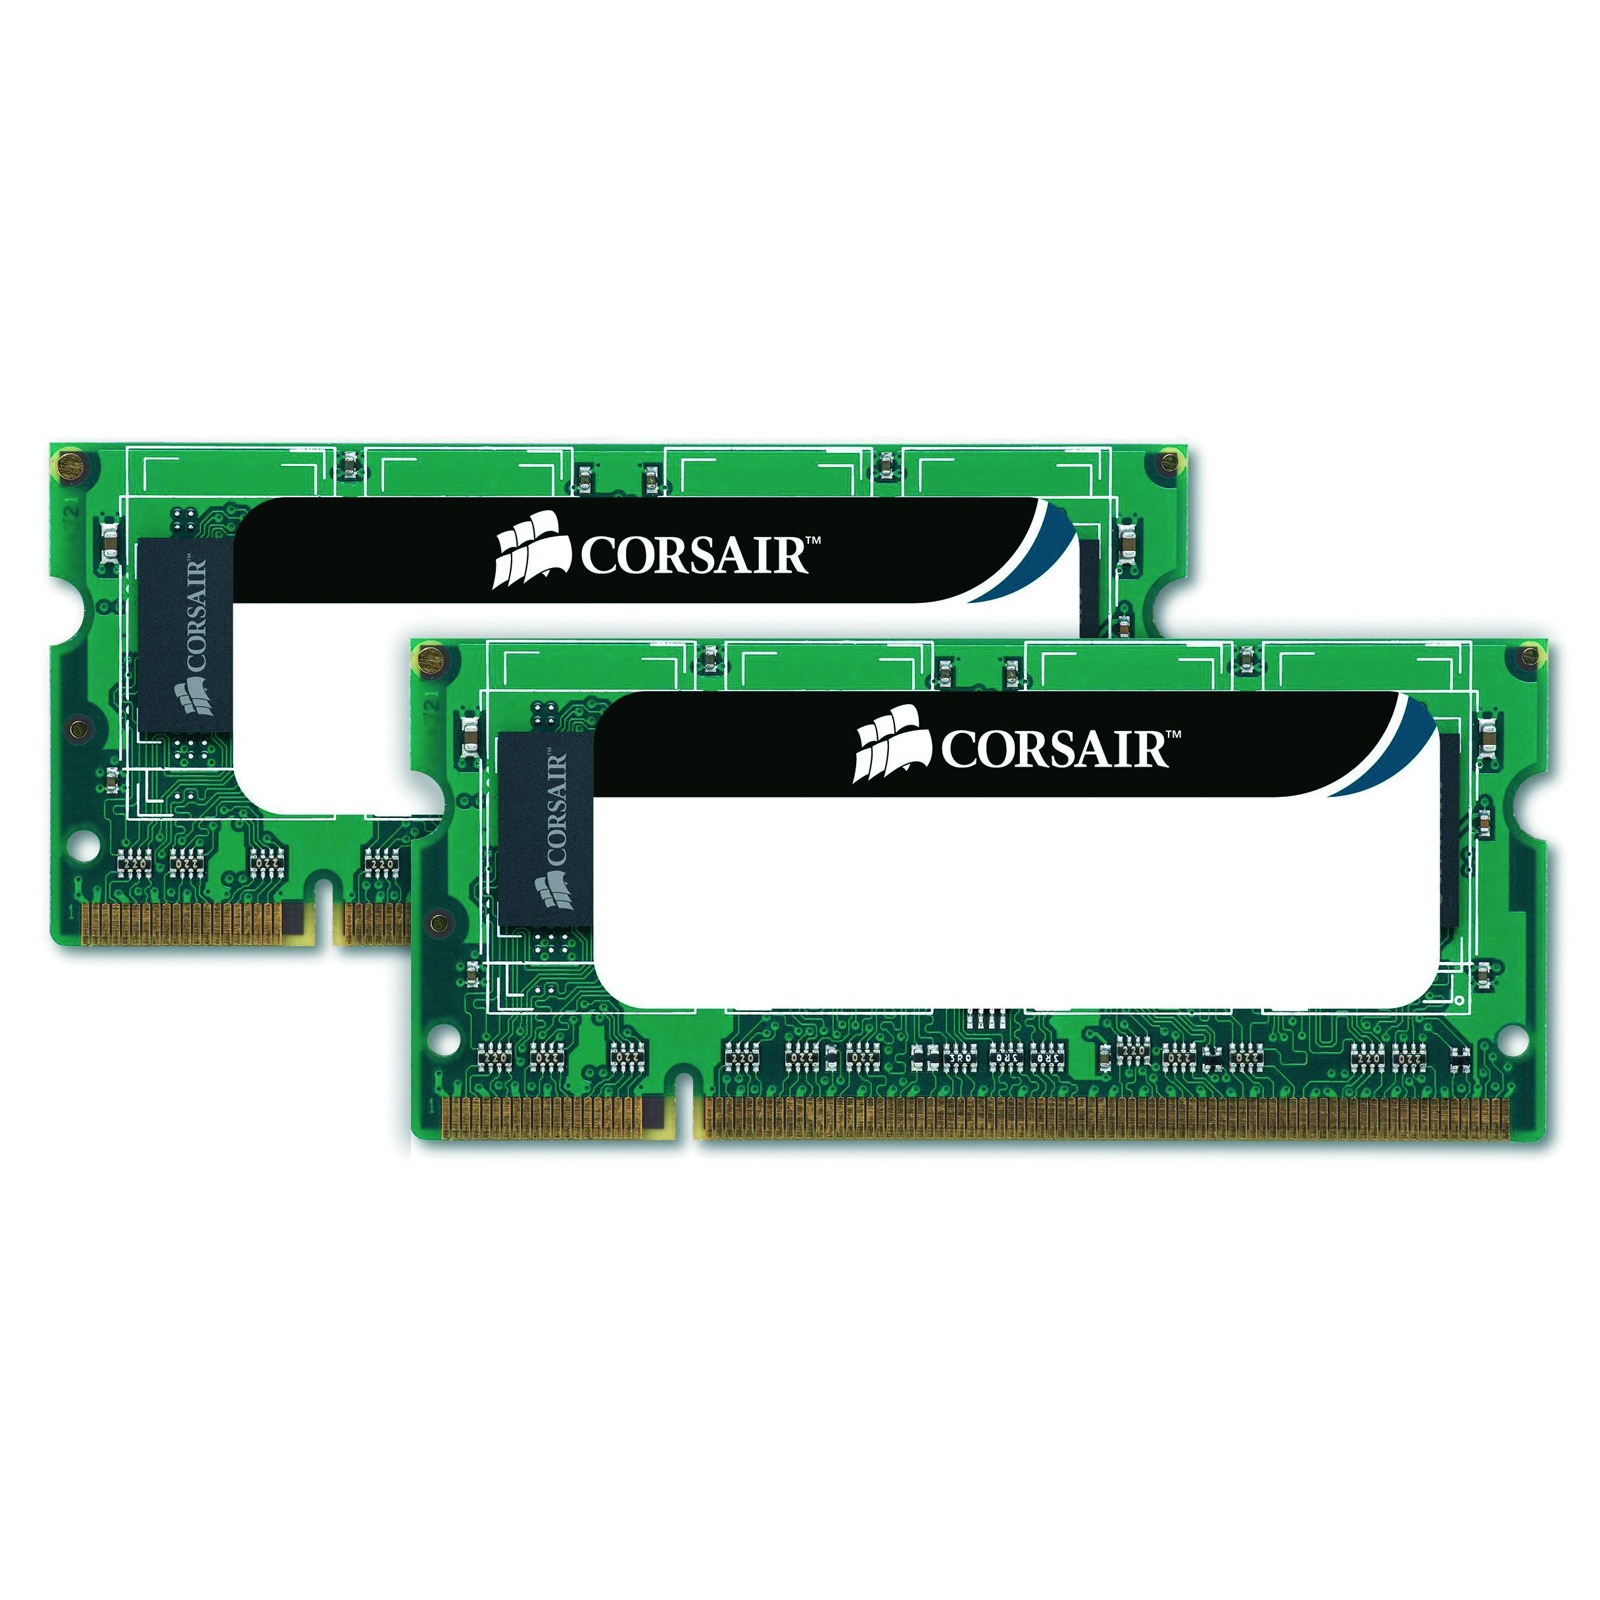 Mémoire PC portable Corsair Value Select SO-DIMM 4 Go (2x 2 Go) DDR3 1333 MHz Kit Dual Channel RAM SO-DIMM DDR3 PC10600 - CMSO4GX3M2A1333C9 (garantie 10 ans par Corsair)